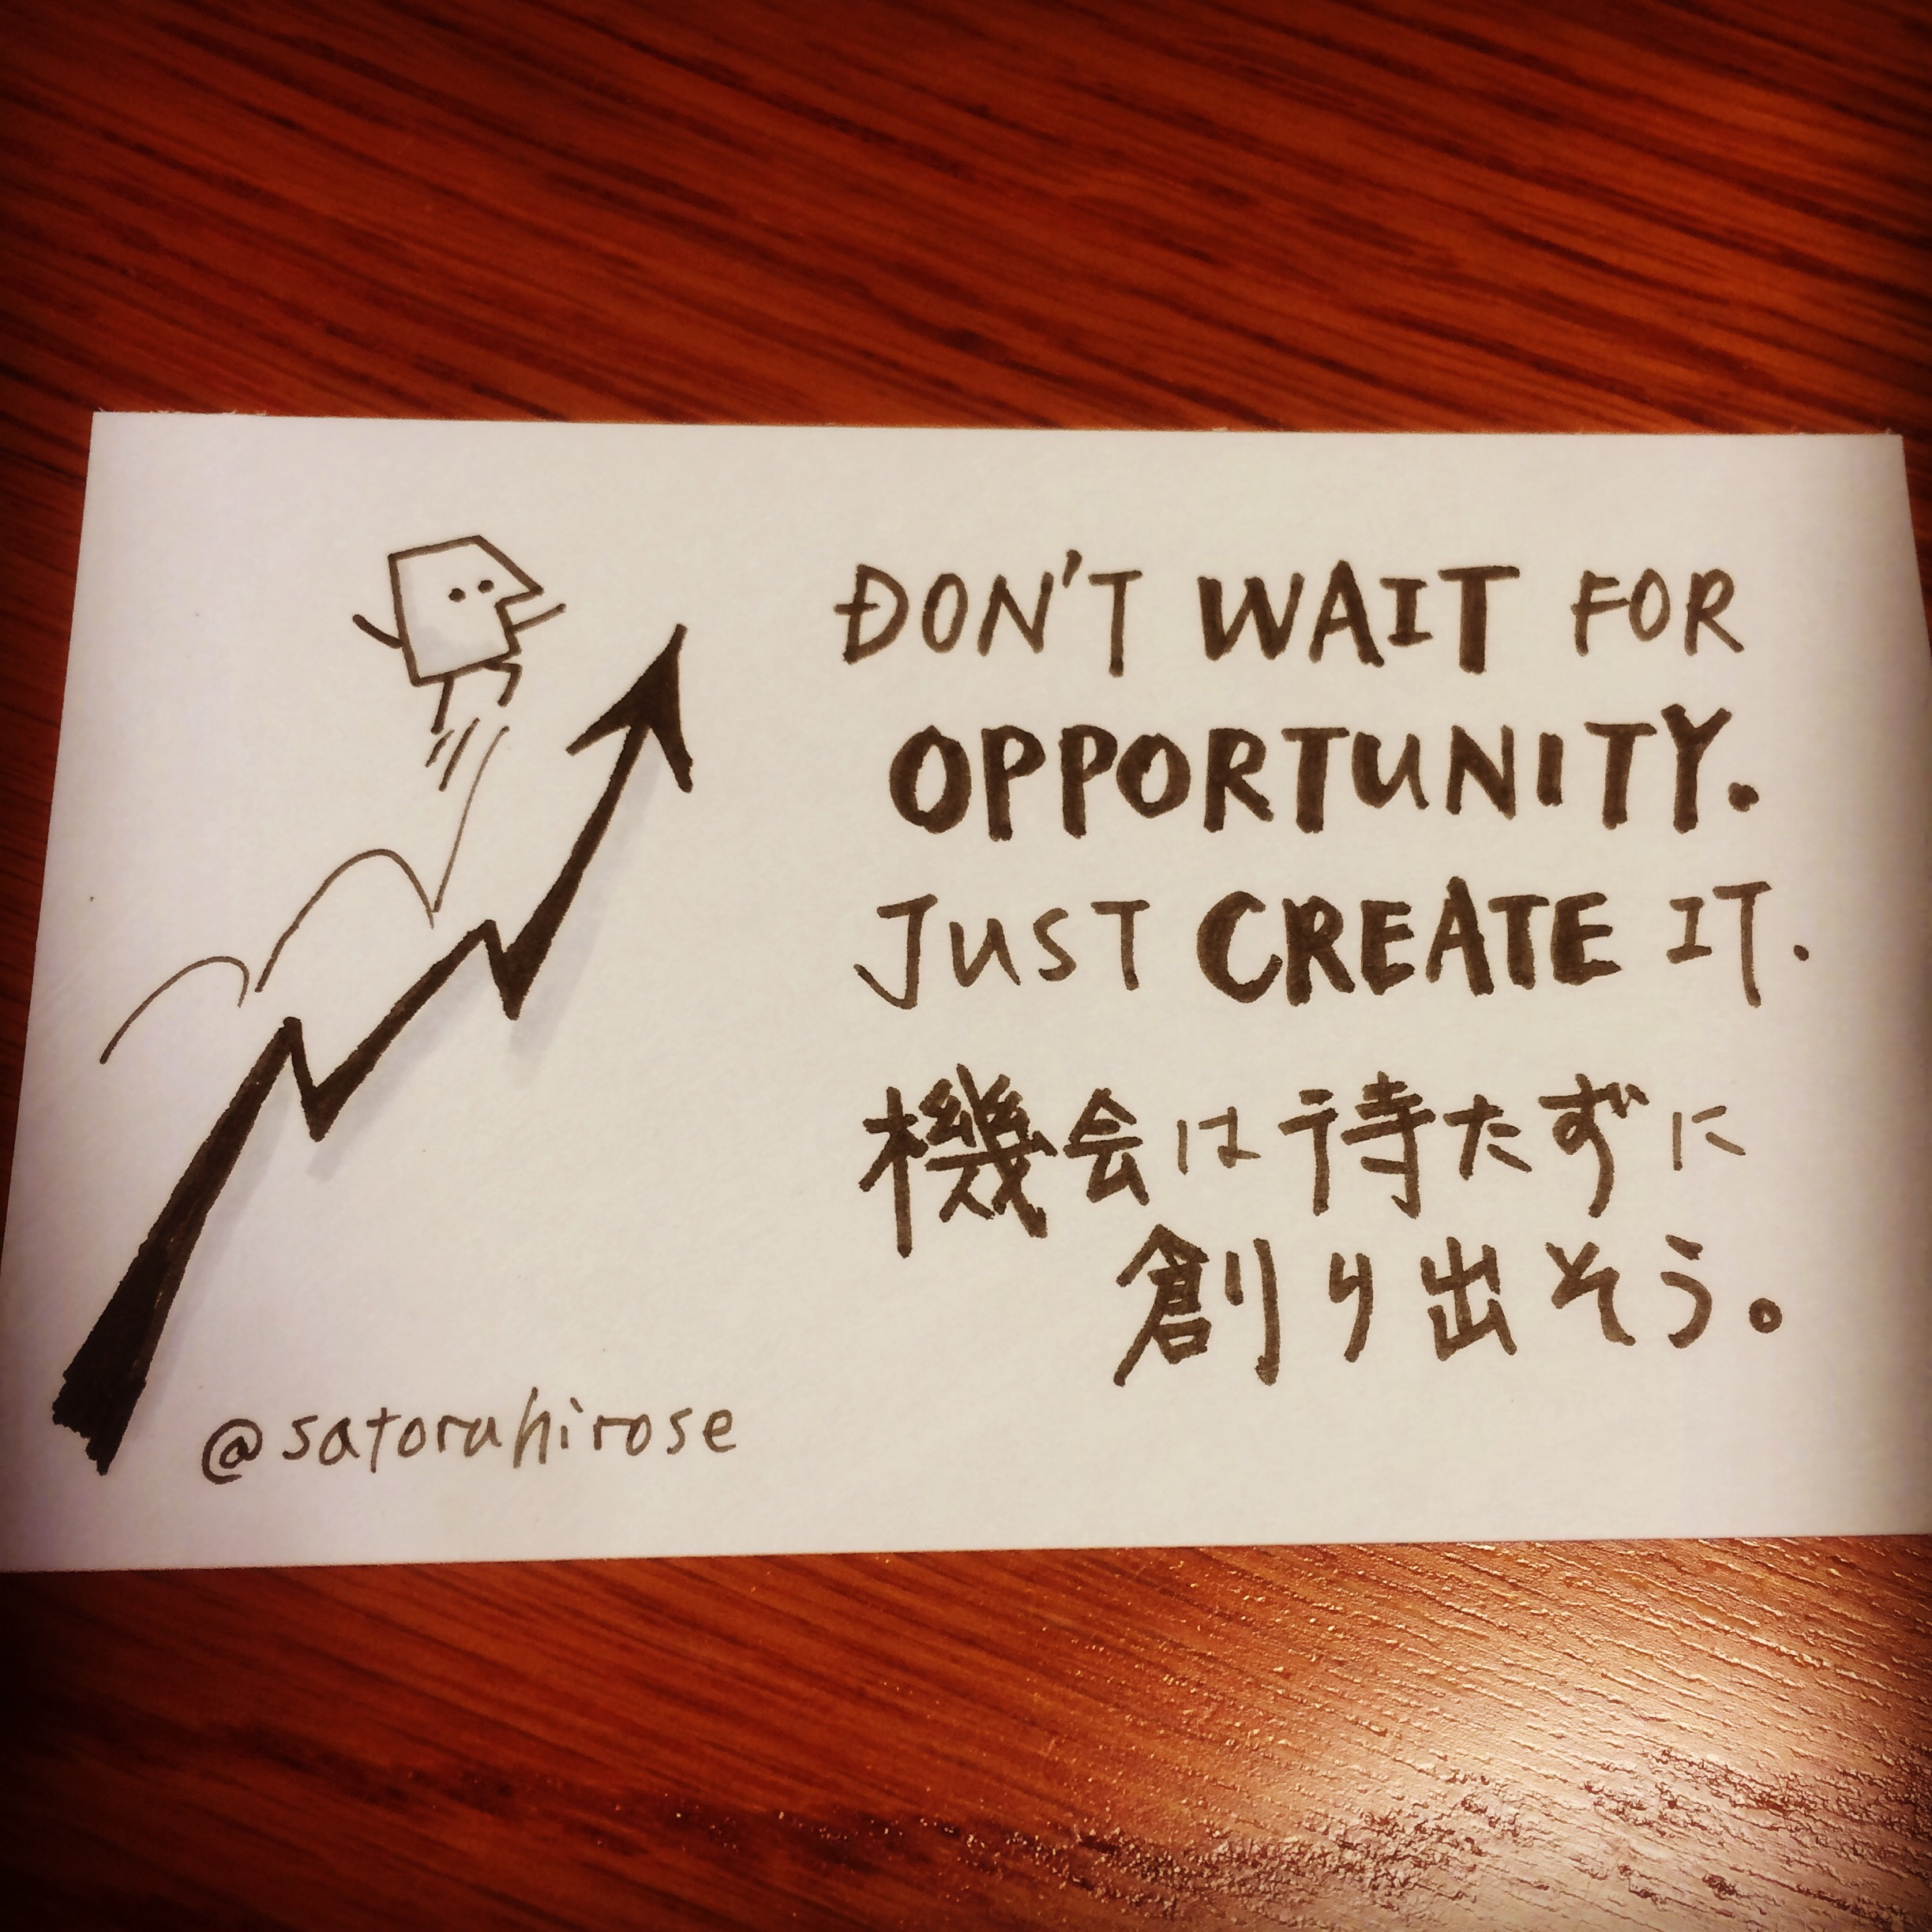 Don't wait for opportunity. Just create it.